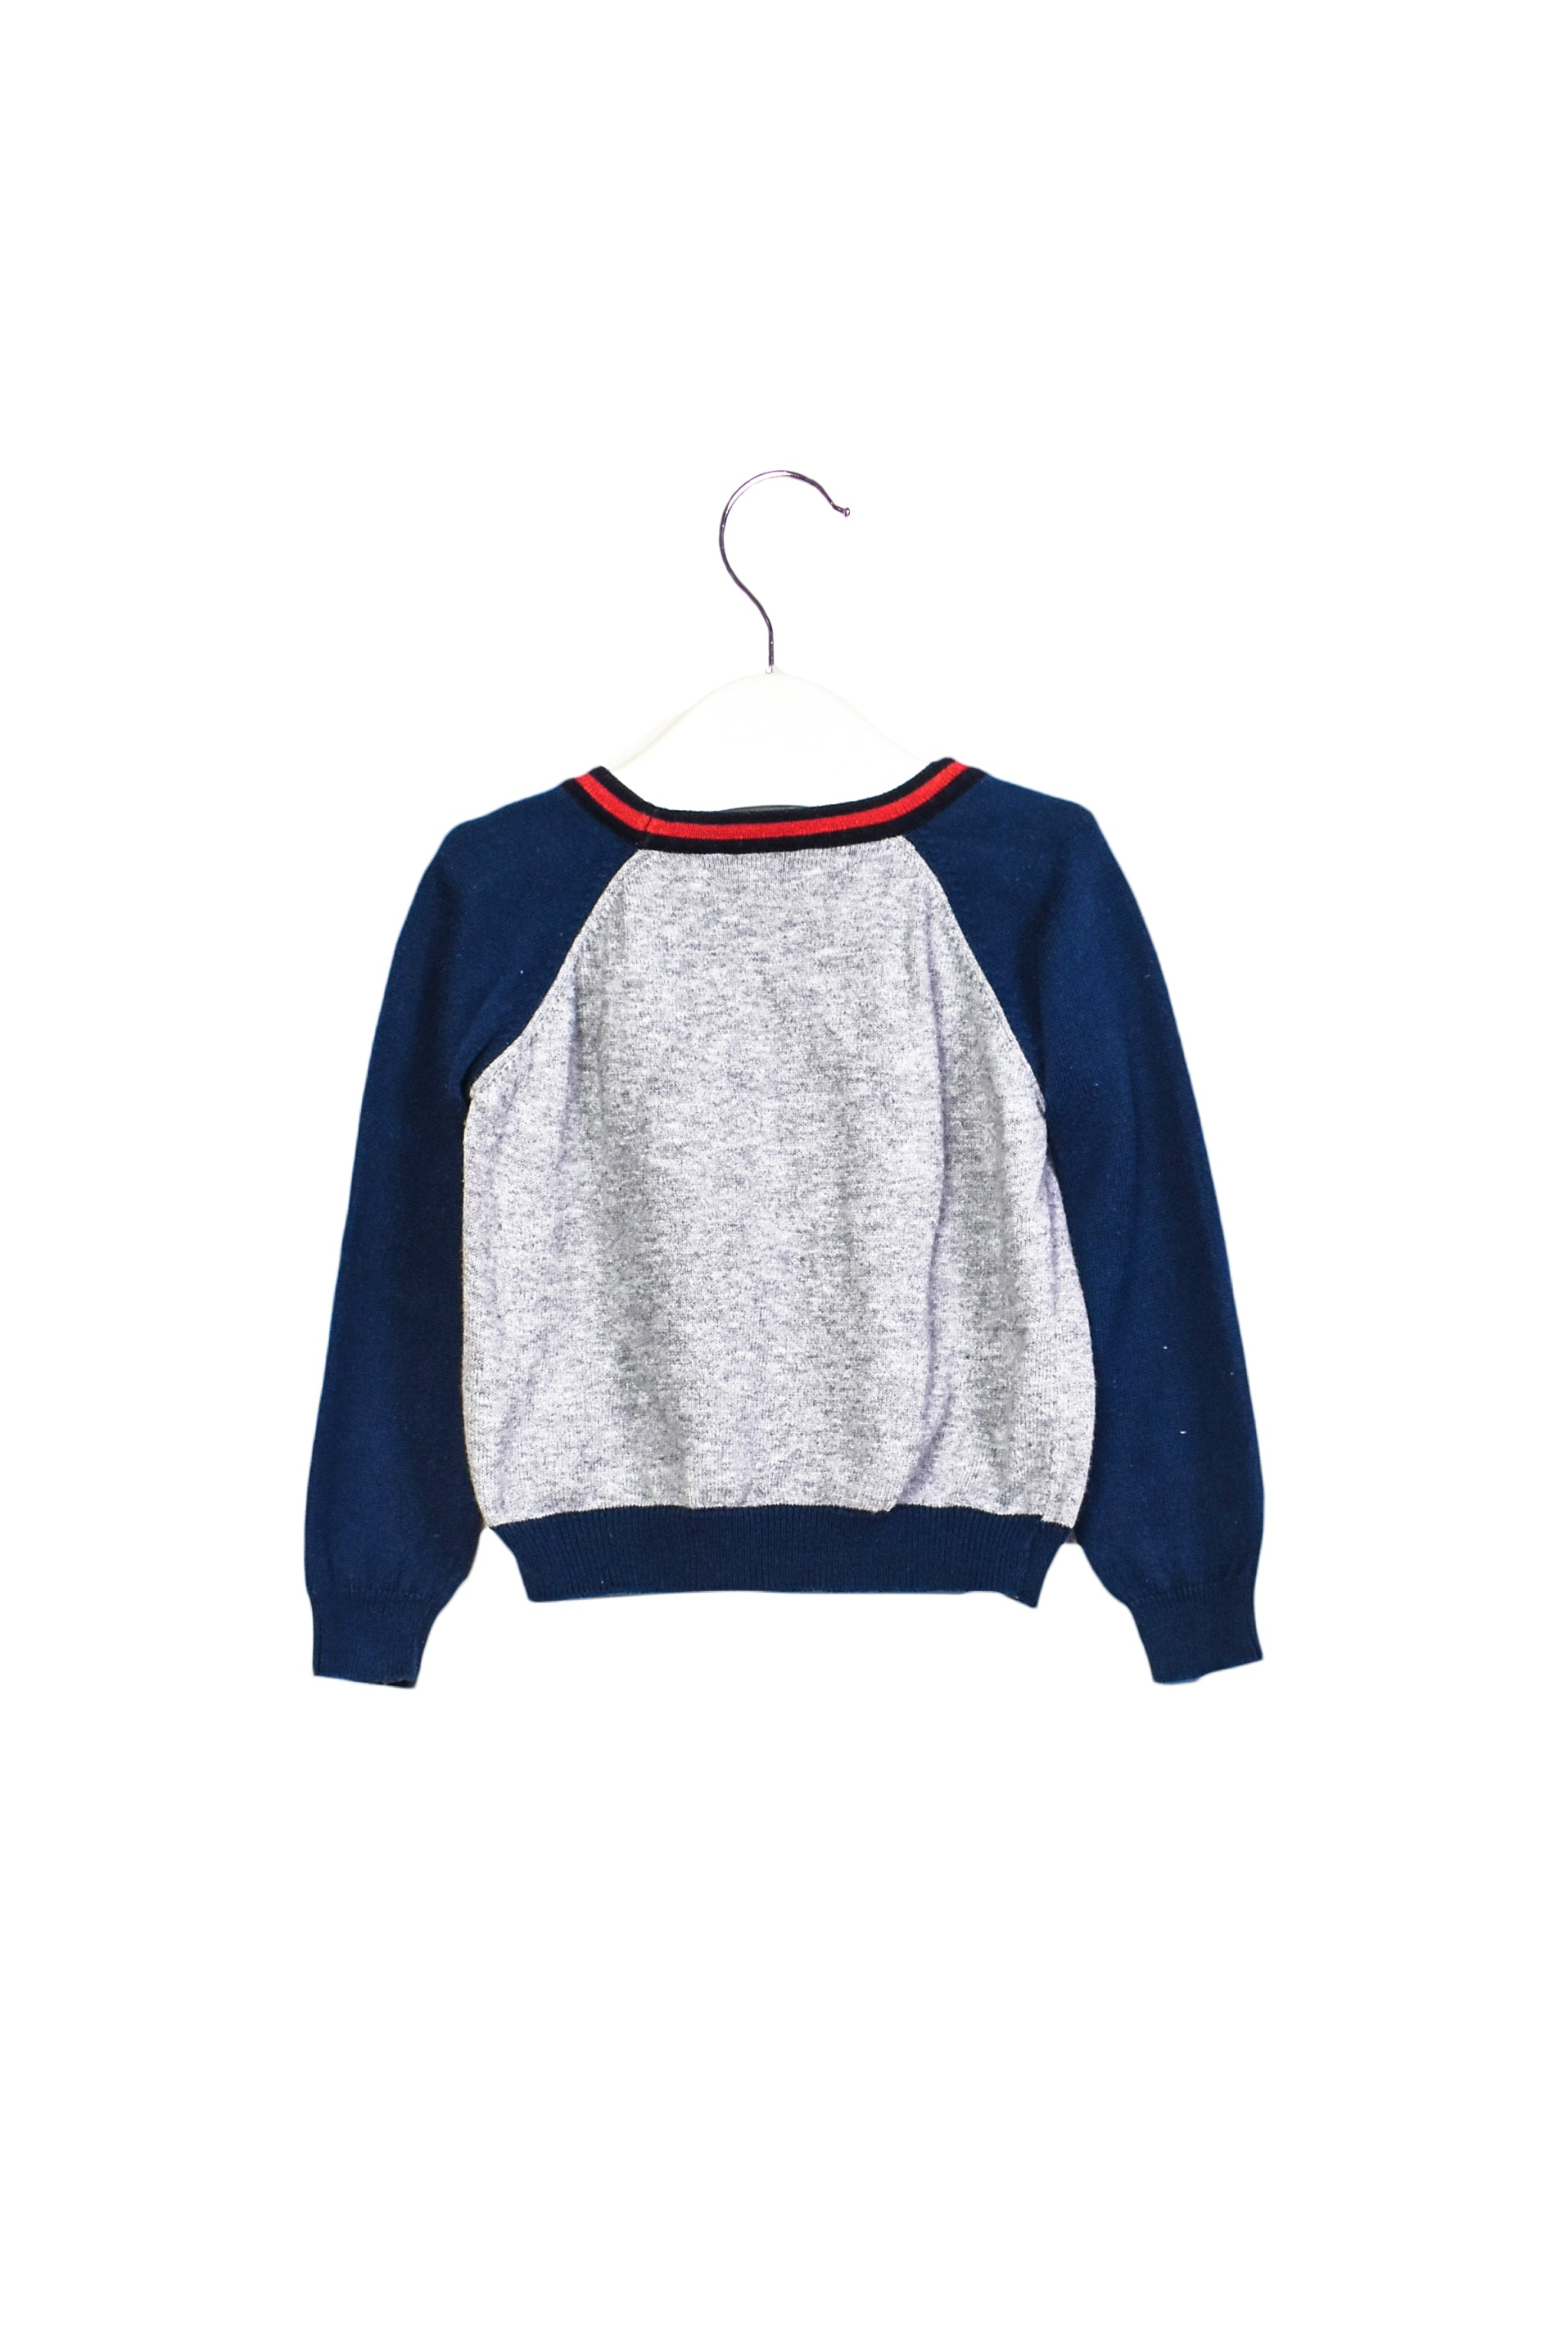 cc91474bb 10014305 Gucci Baby ~ Cardigan 9-12M at Retykle